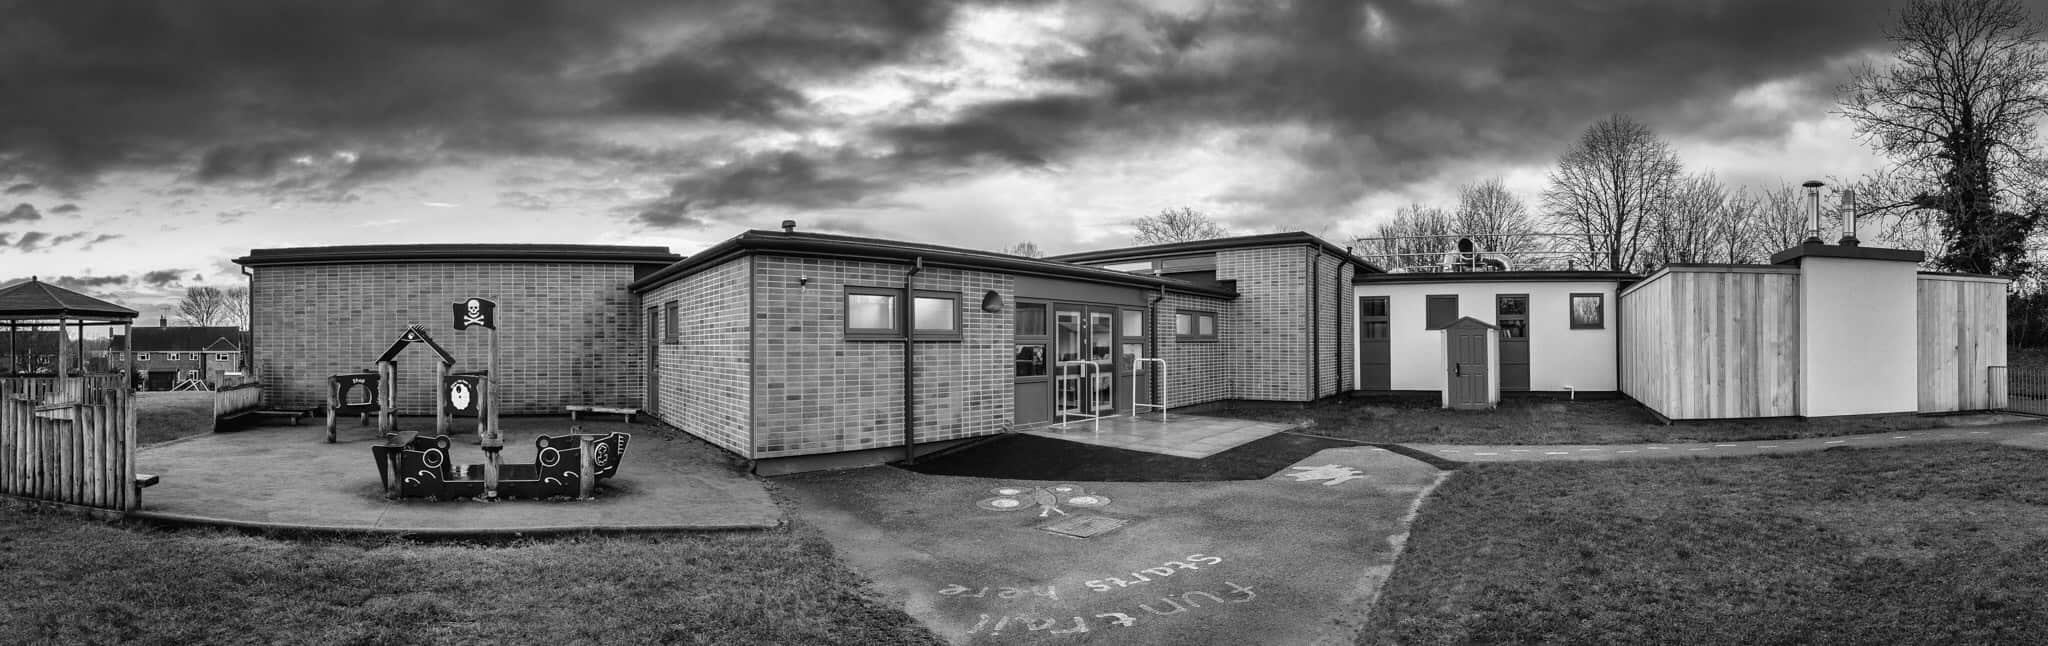 Barton Stacey School panoramic image